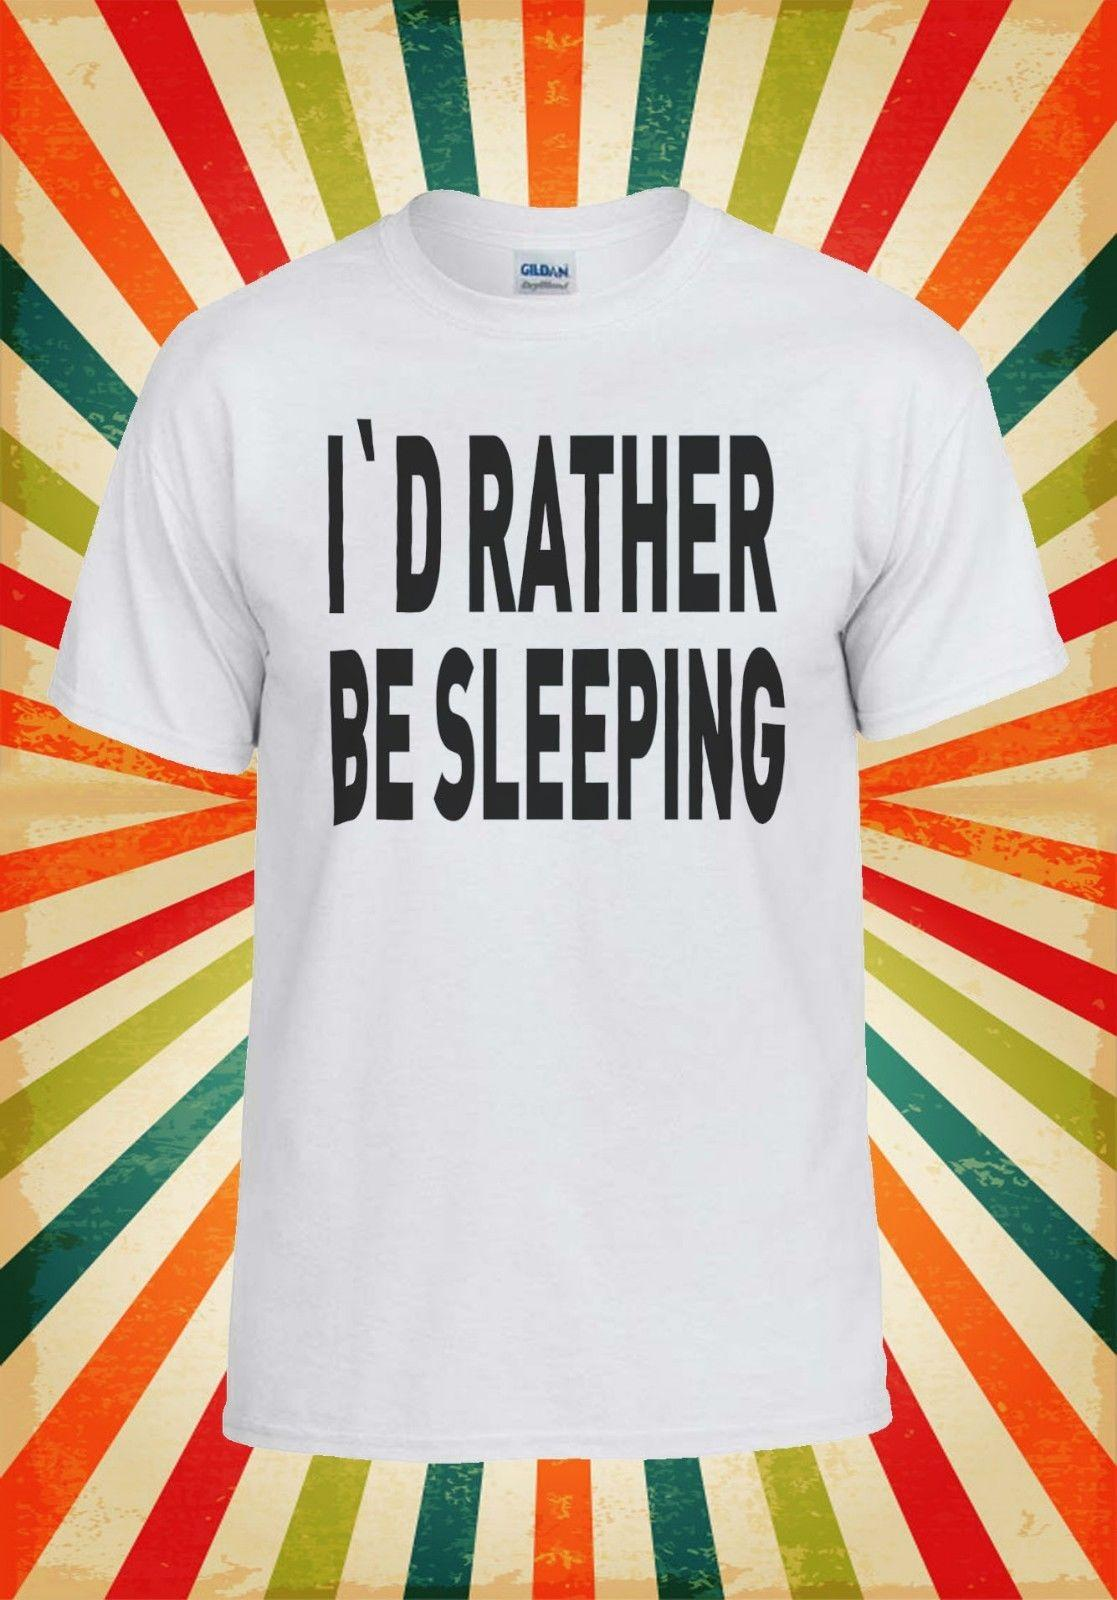 7300569a I`d Rather Be Sleeping Novelty Cool Men Women Vest Tank Top Unisex T Shirt  959 Artistic T Shirts Thirts From Lanshiren3, $11.64| DHgate.Com